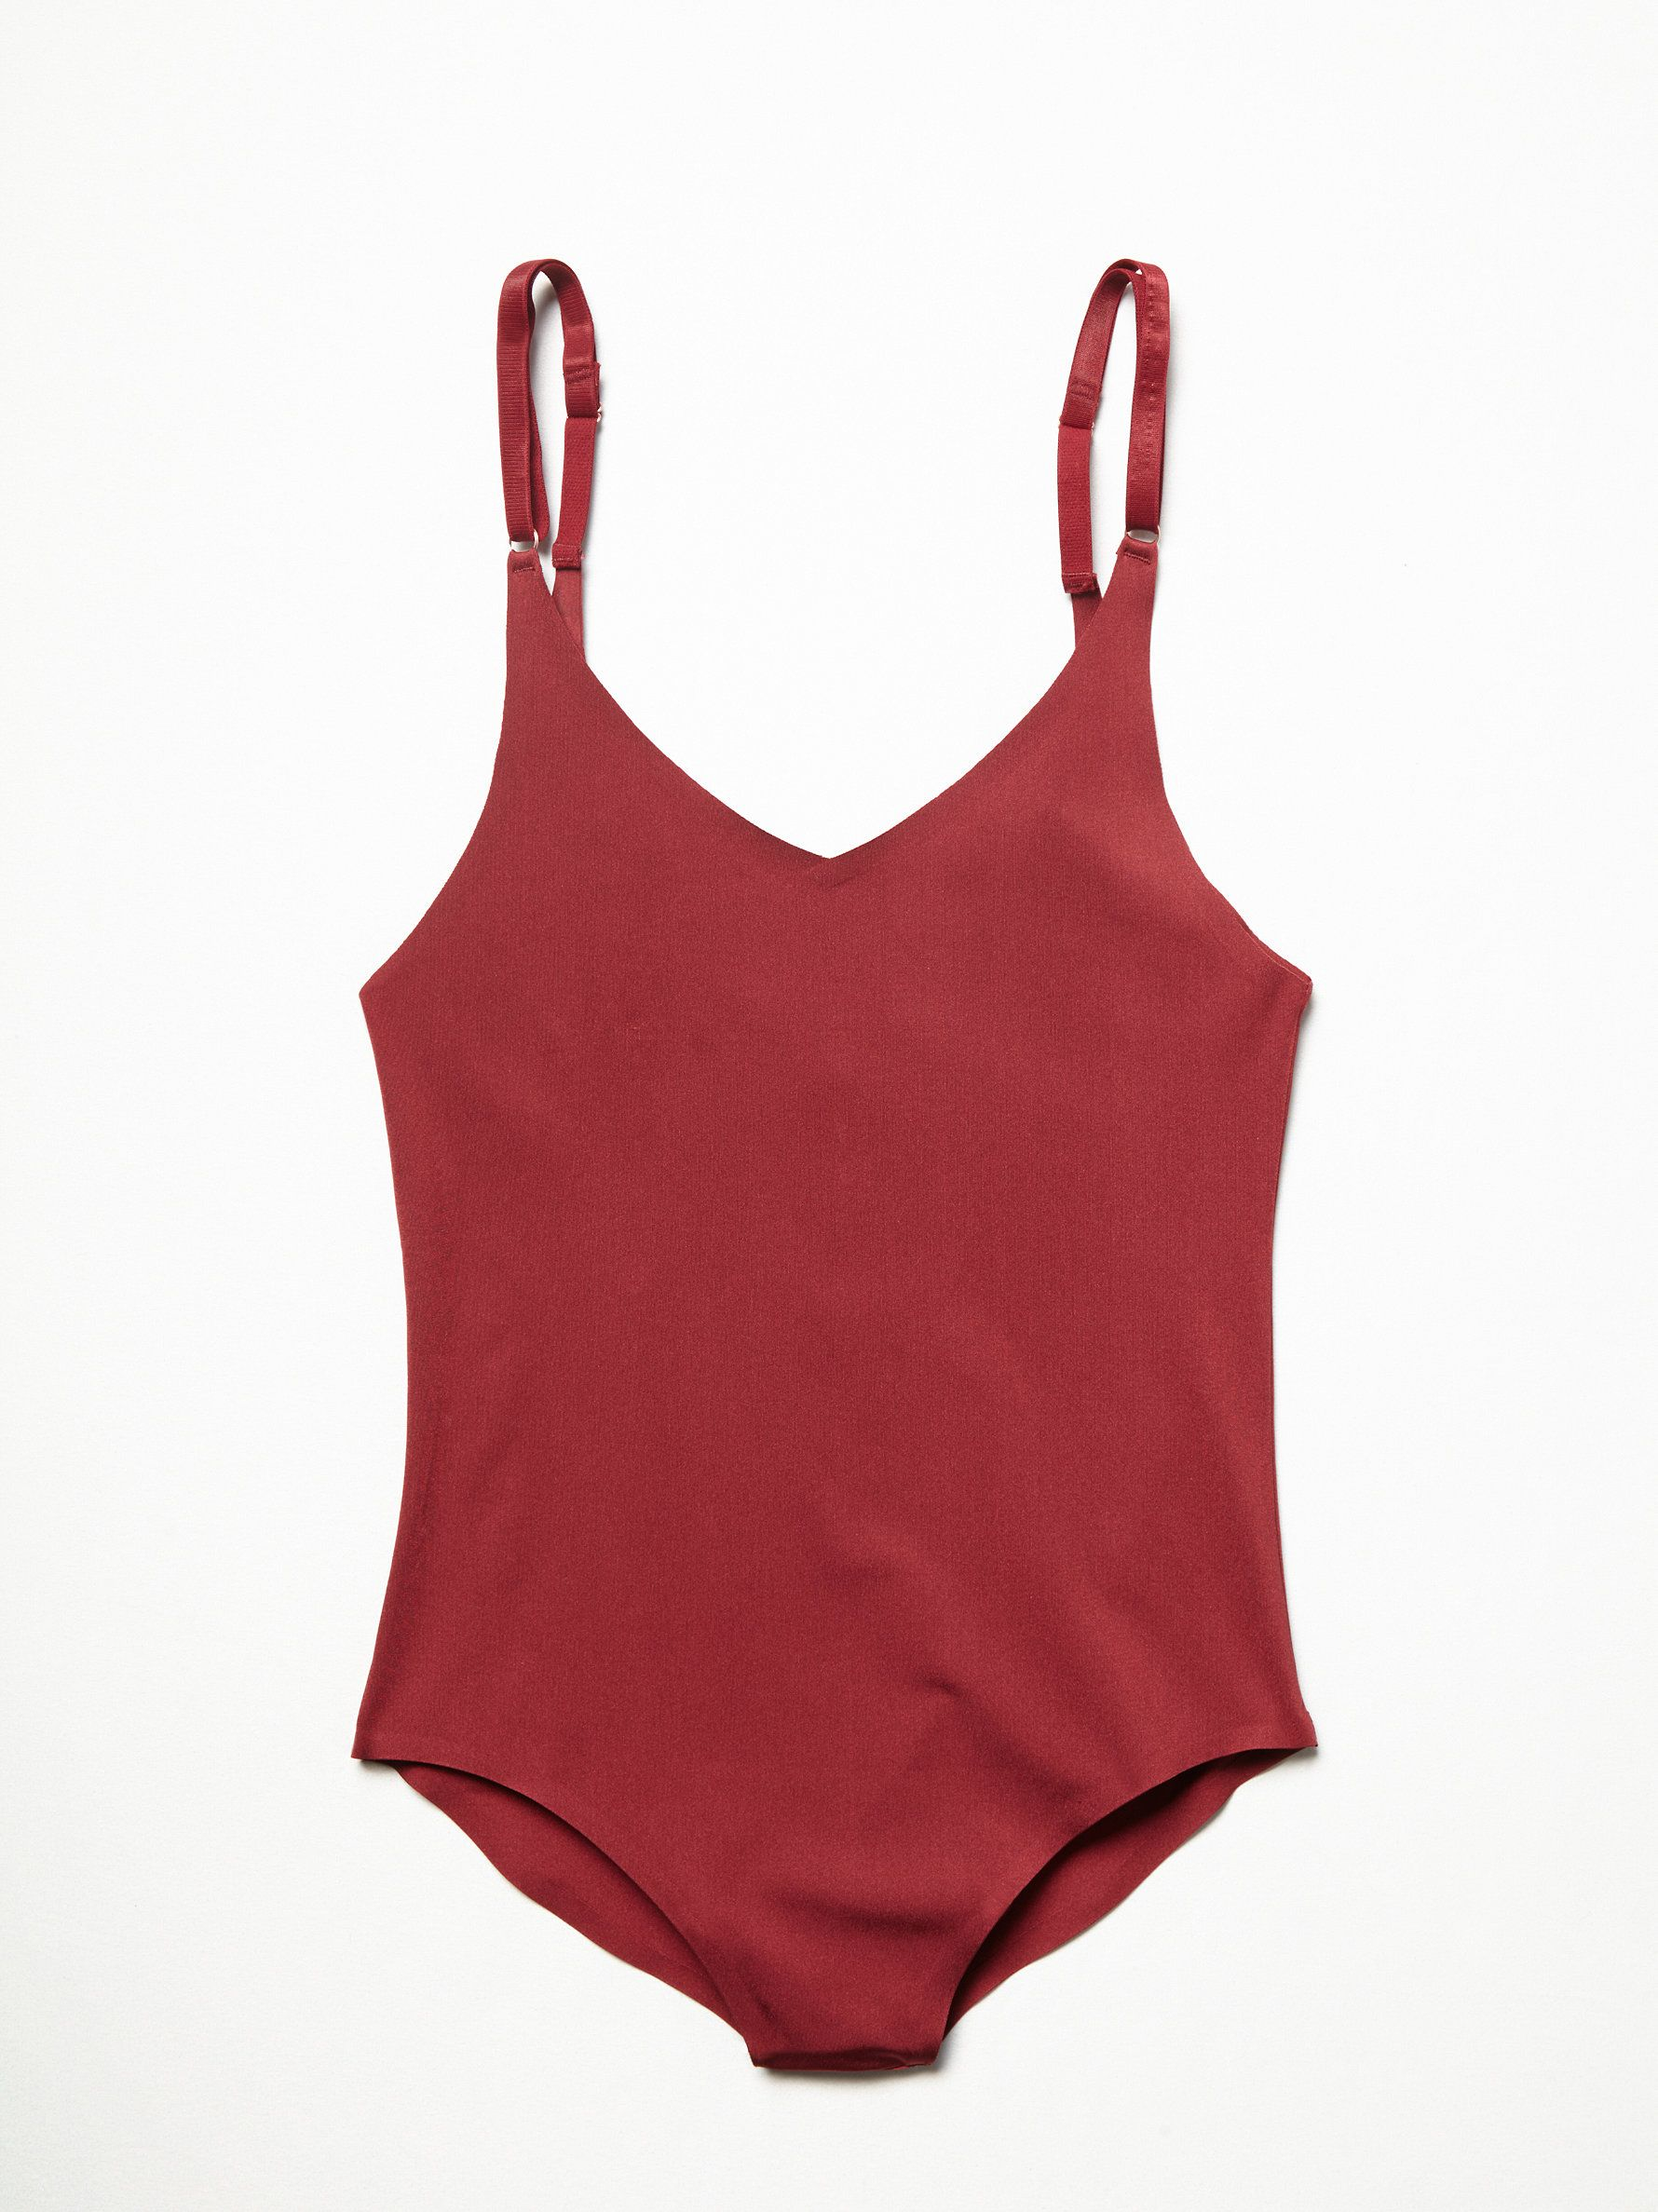 City Slick Bodysuit   In a silky fabric this seamless fabric this easy bodysuit features a V-neckline in front and back and adjustable straps. The perfect layering piece. Snap closures on the gusset.